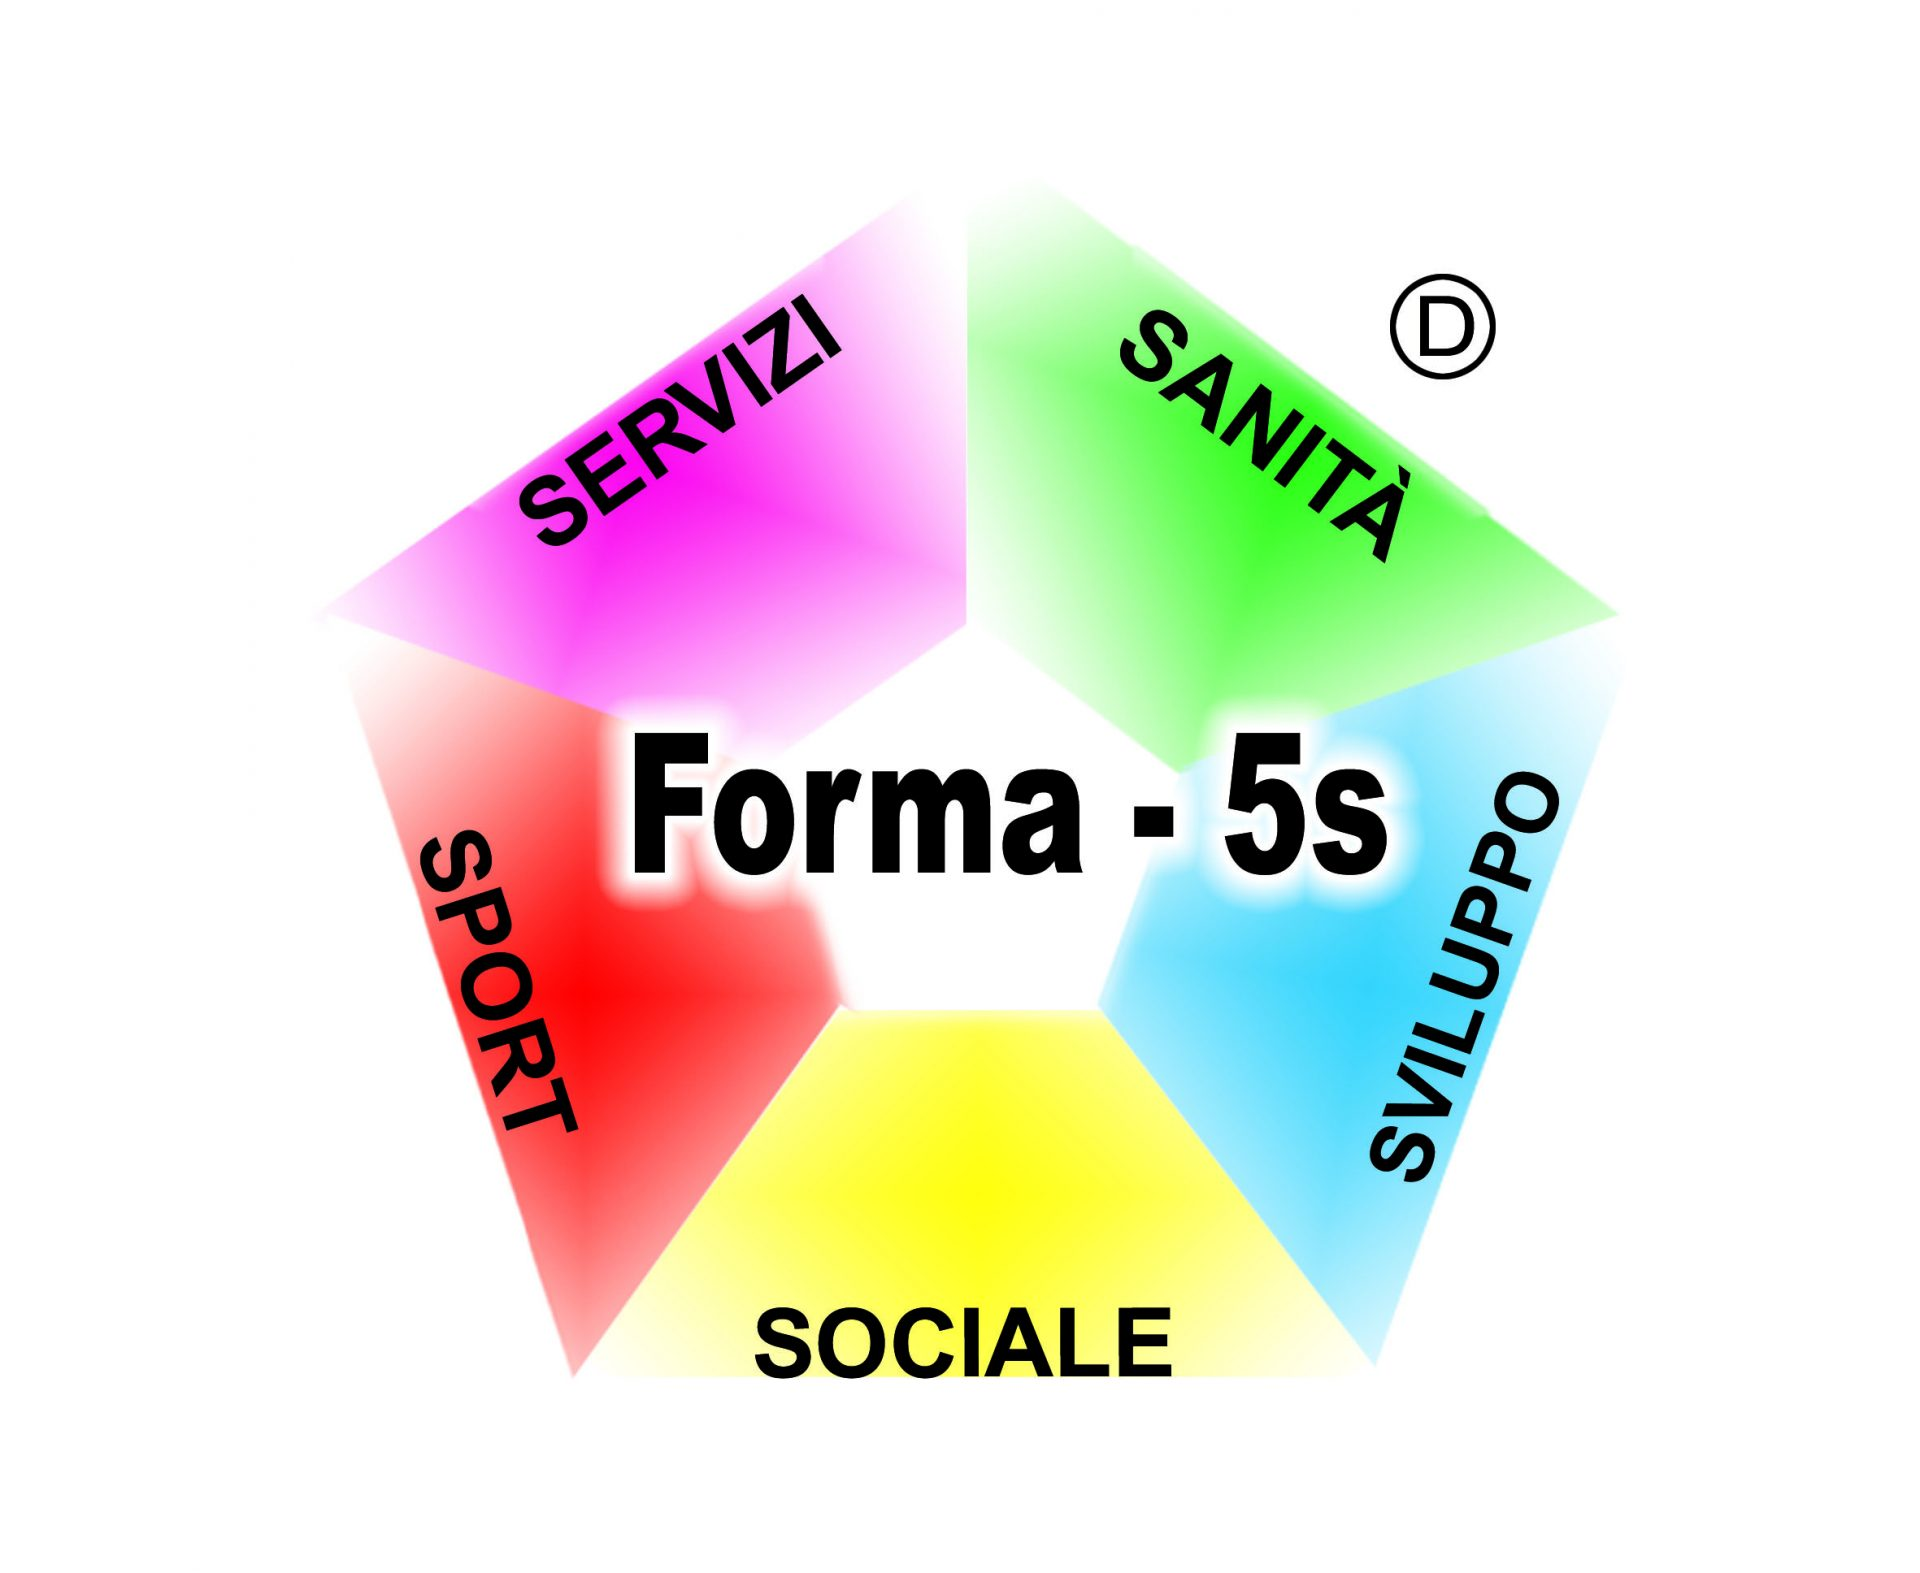 Forma-5s